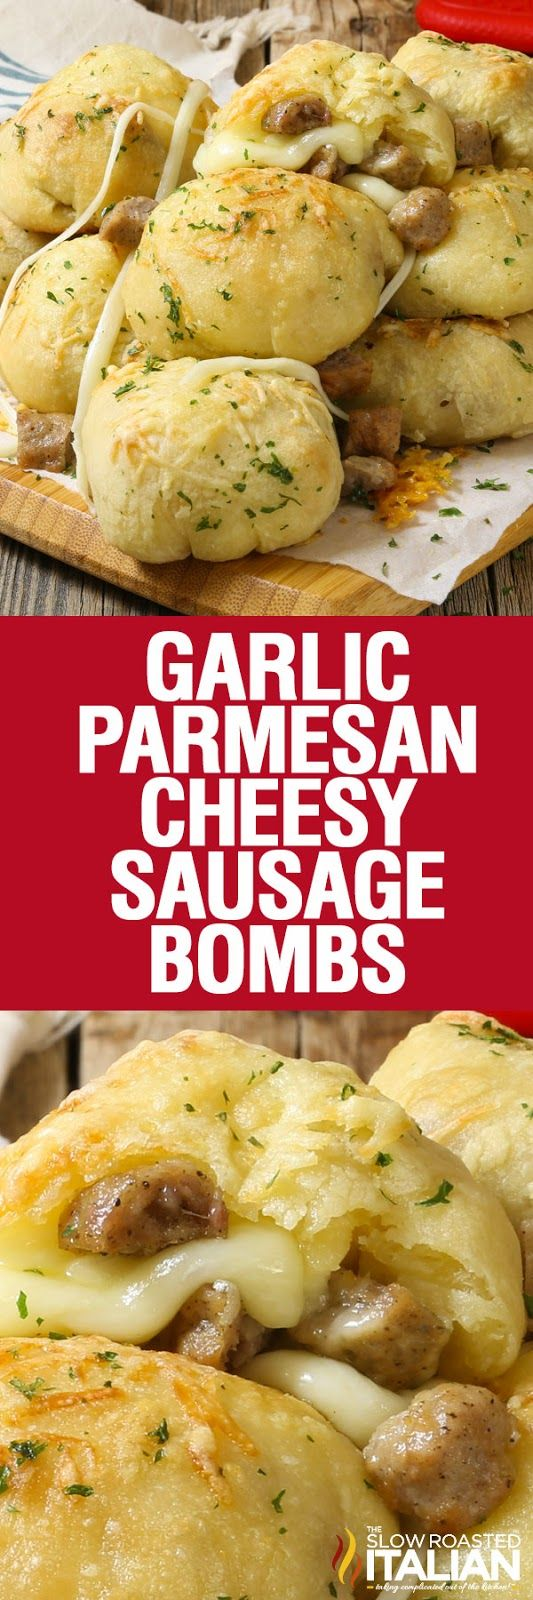 Garlic Parmesan Cheesy Sausage Bombs are soft and tender portable poppers, loaded with ooey gooey mozzarella cheese and scrumptious bites of sausage. Topped with garlic butter and Parmesan cheese breakfast with a simple recipe doesn't get much better than this!